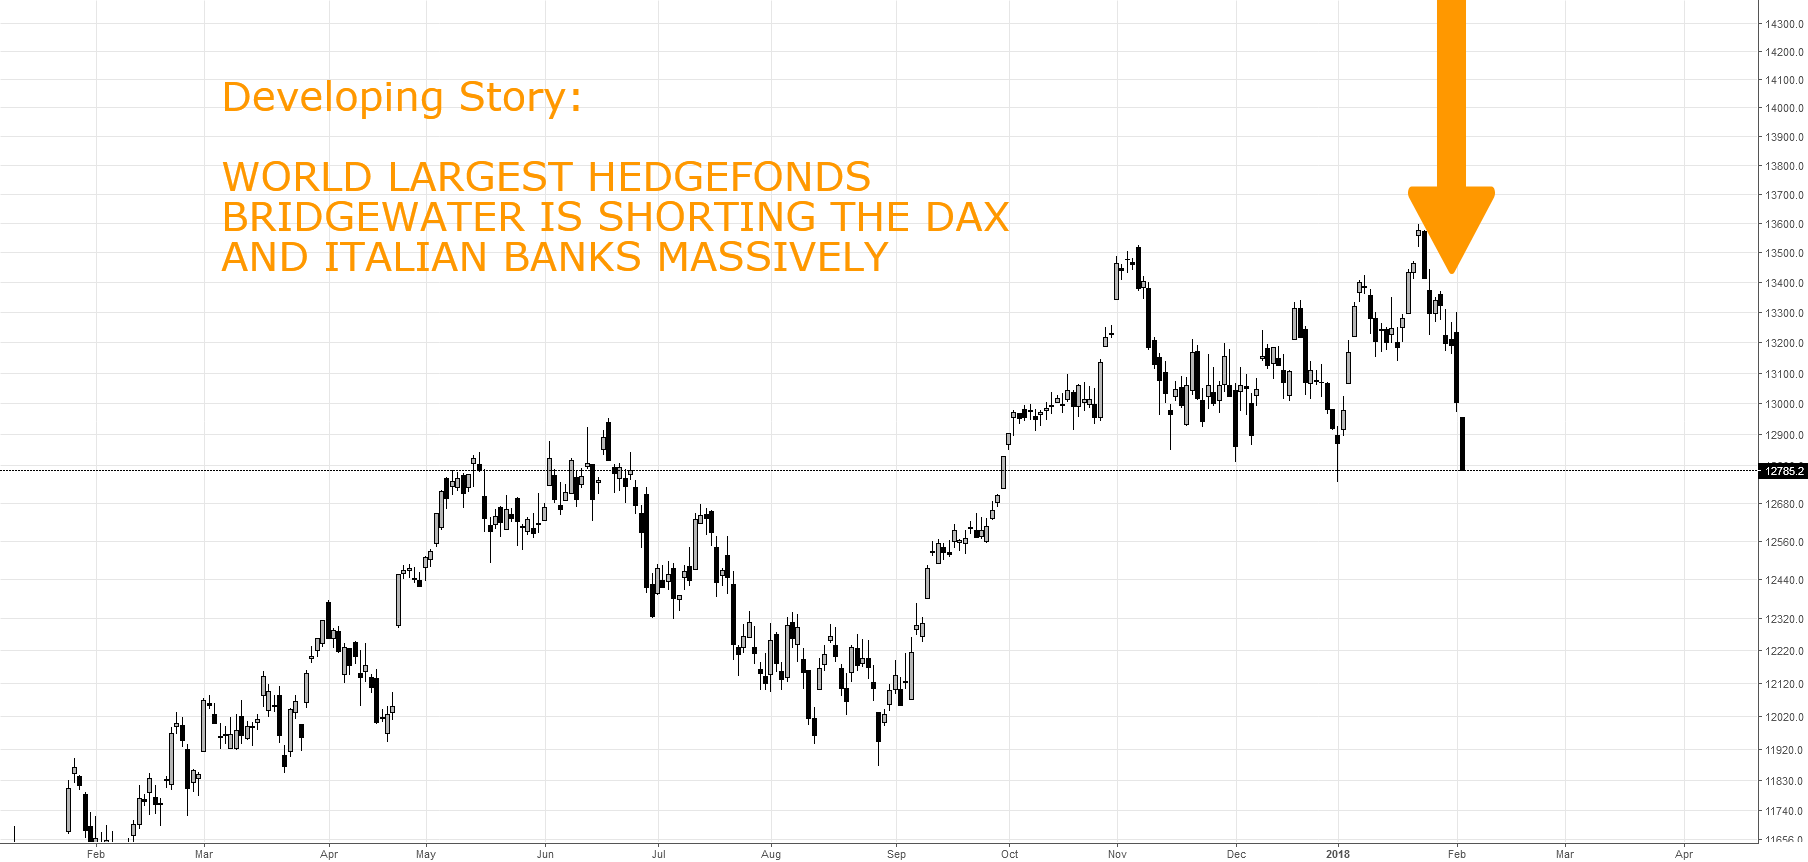 BRIDGEWATER IS SHORTING THE DAX - MASSIVELY